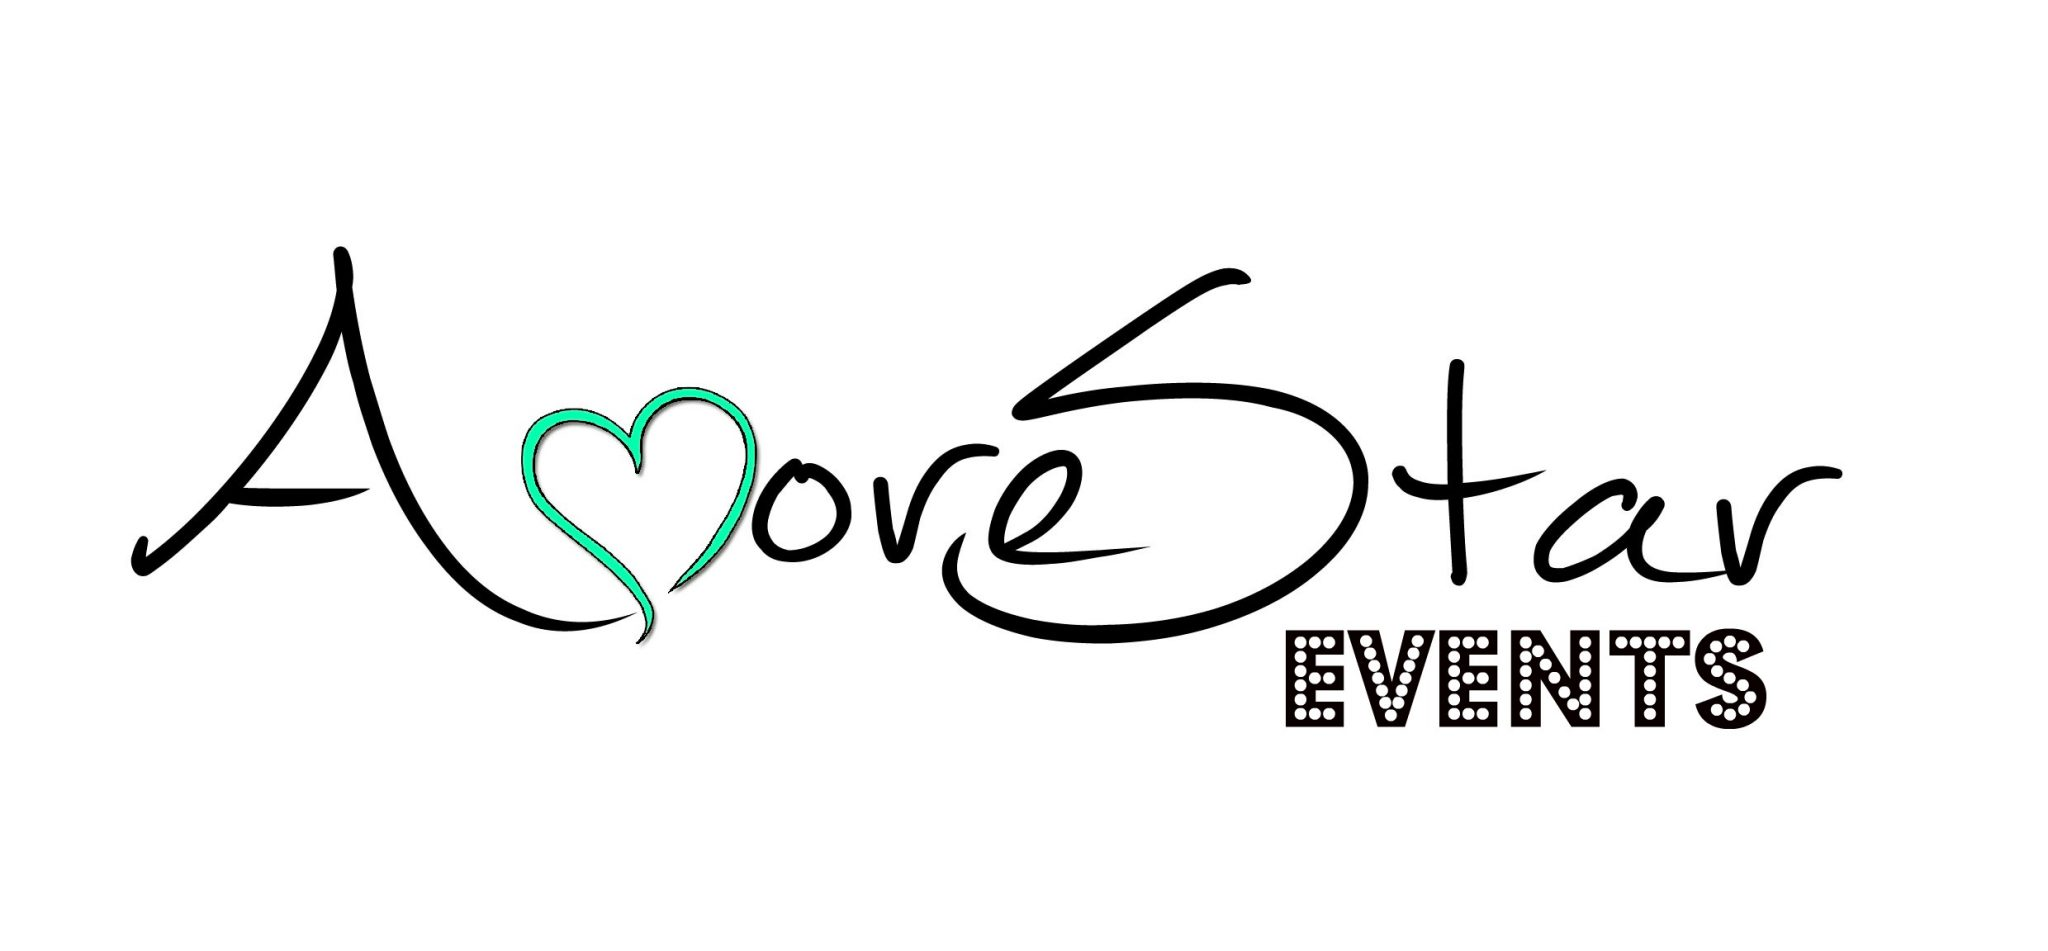 Member Focus - Amore Star Events